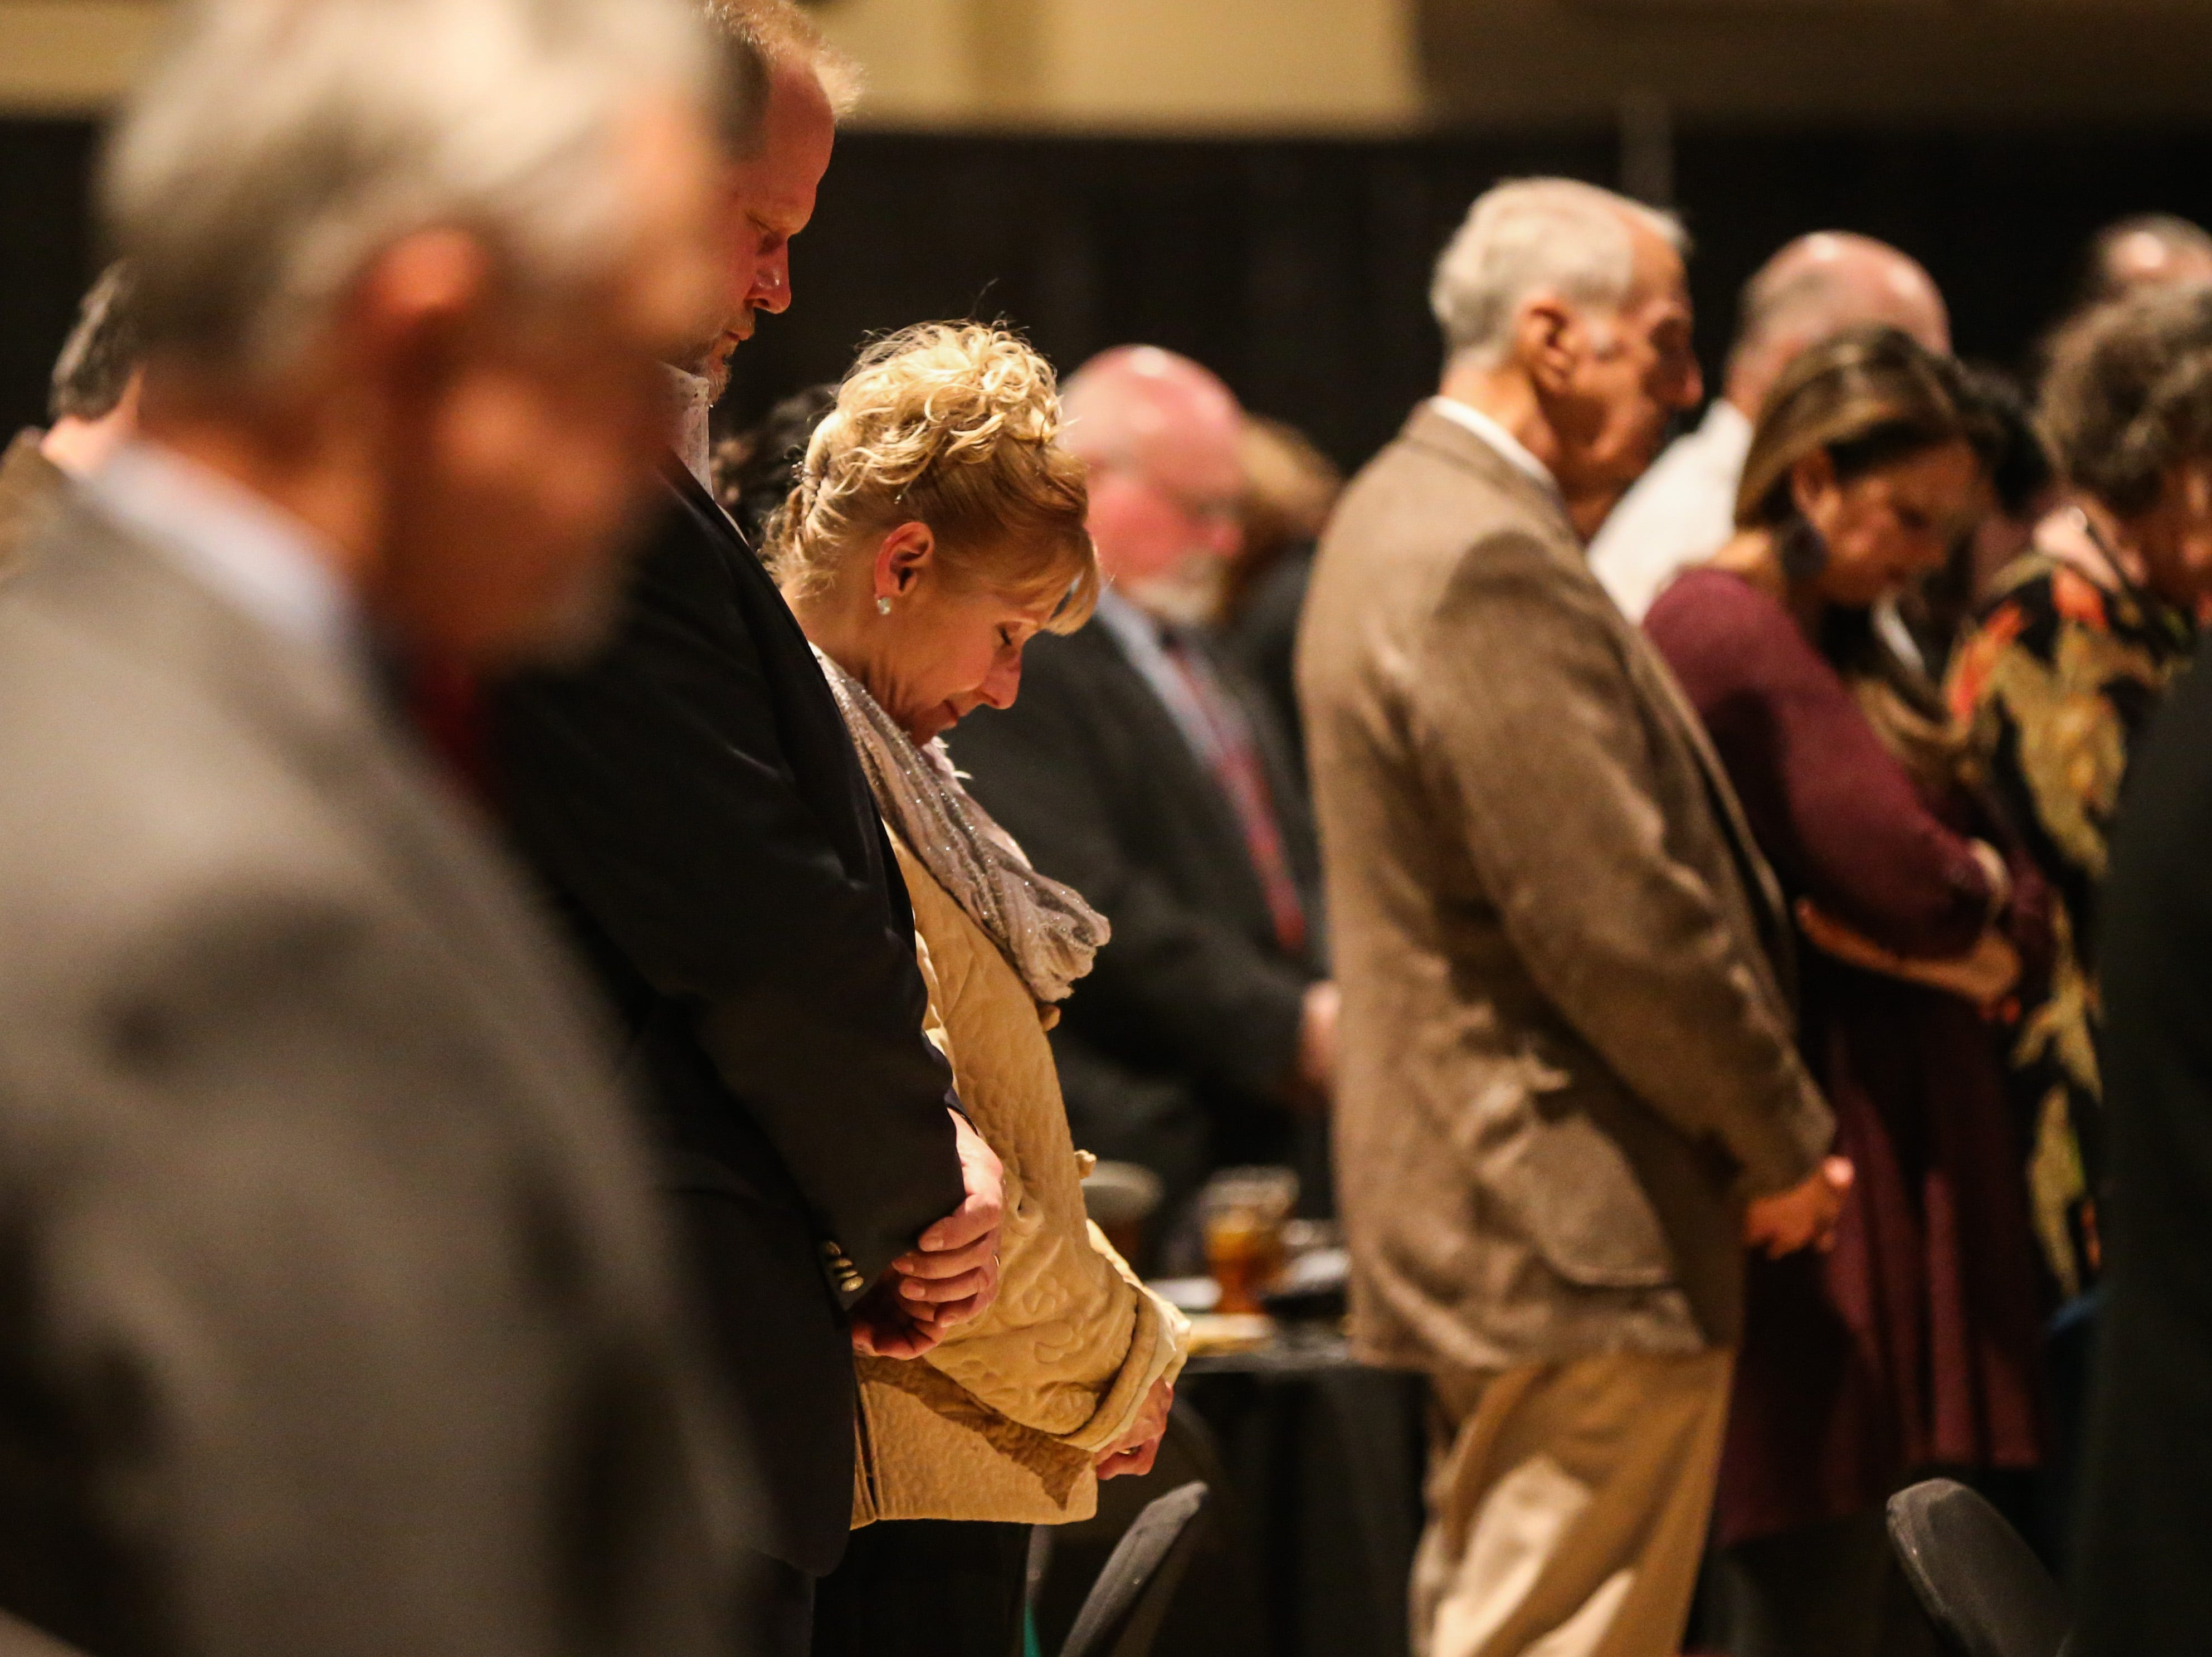 People pray at the start of the San Angelo Chamber of Commerce Annual Banquet Thursday, Jan. 24, 2019, at McNease Convention Center.